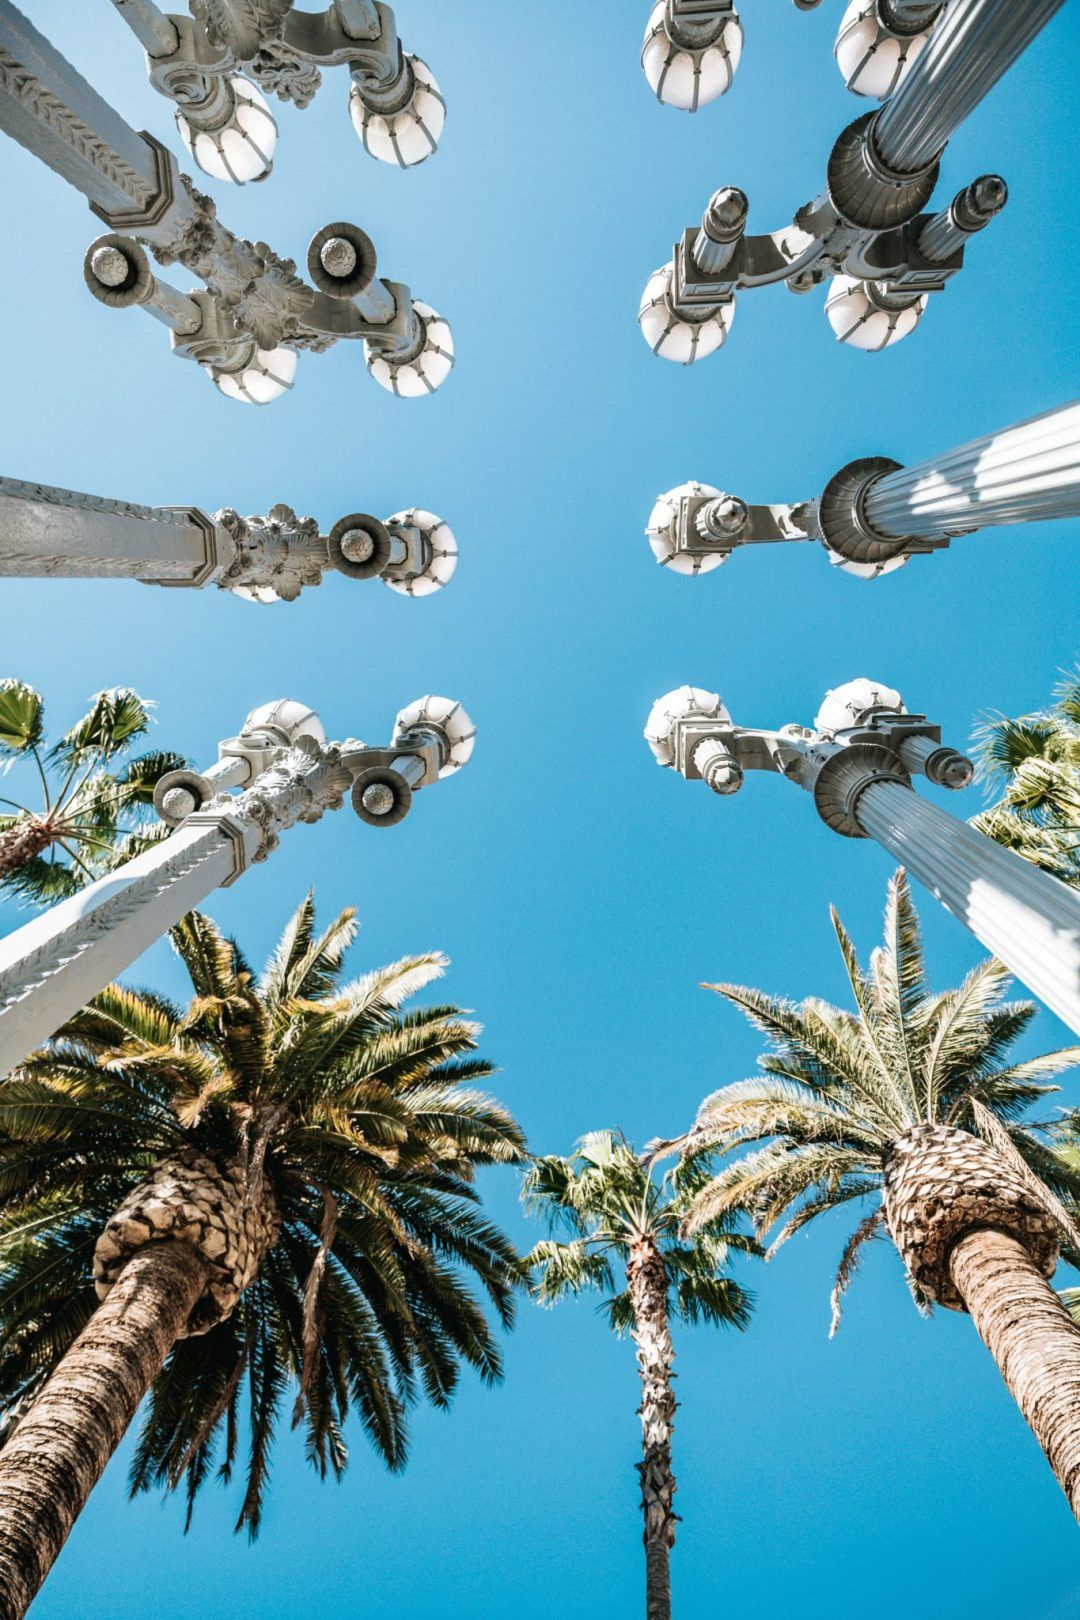 2 days in Los Angeles is a perfect time to explore the city's highlights and decide whether you like the LA vibe. Follow our Los Angeles 2 Days itinerary to plan your trip and see the most popular attractions: Hollywood Walk of Fame, Beverly Hills, Rodeo Drive, Vence Beach, Santa Monica Pier, Museum Row, and more. #travel #traveling #ca #california #traveling #LA #fun #hollywood #hollywoodland #losangeles #la #losangelescalifornia #california #ca #socal #travelguide #wanderlust